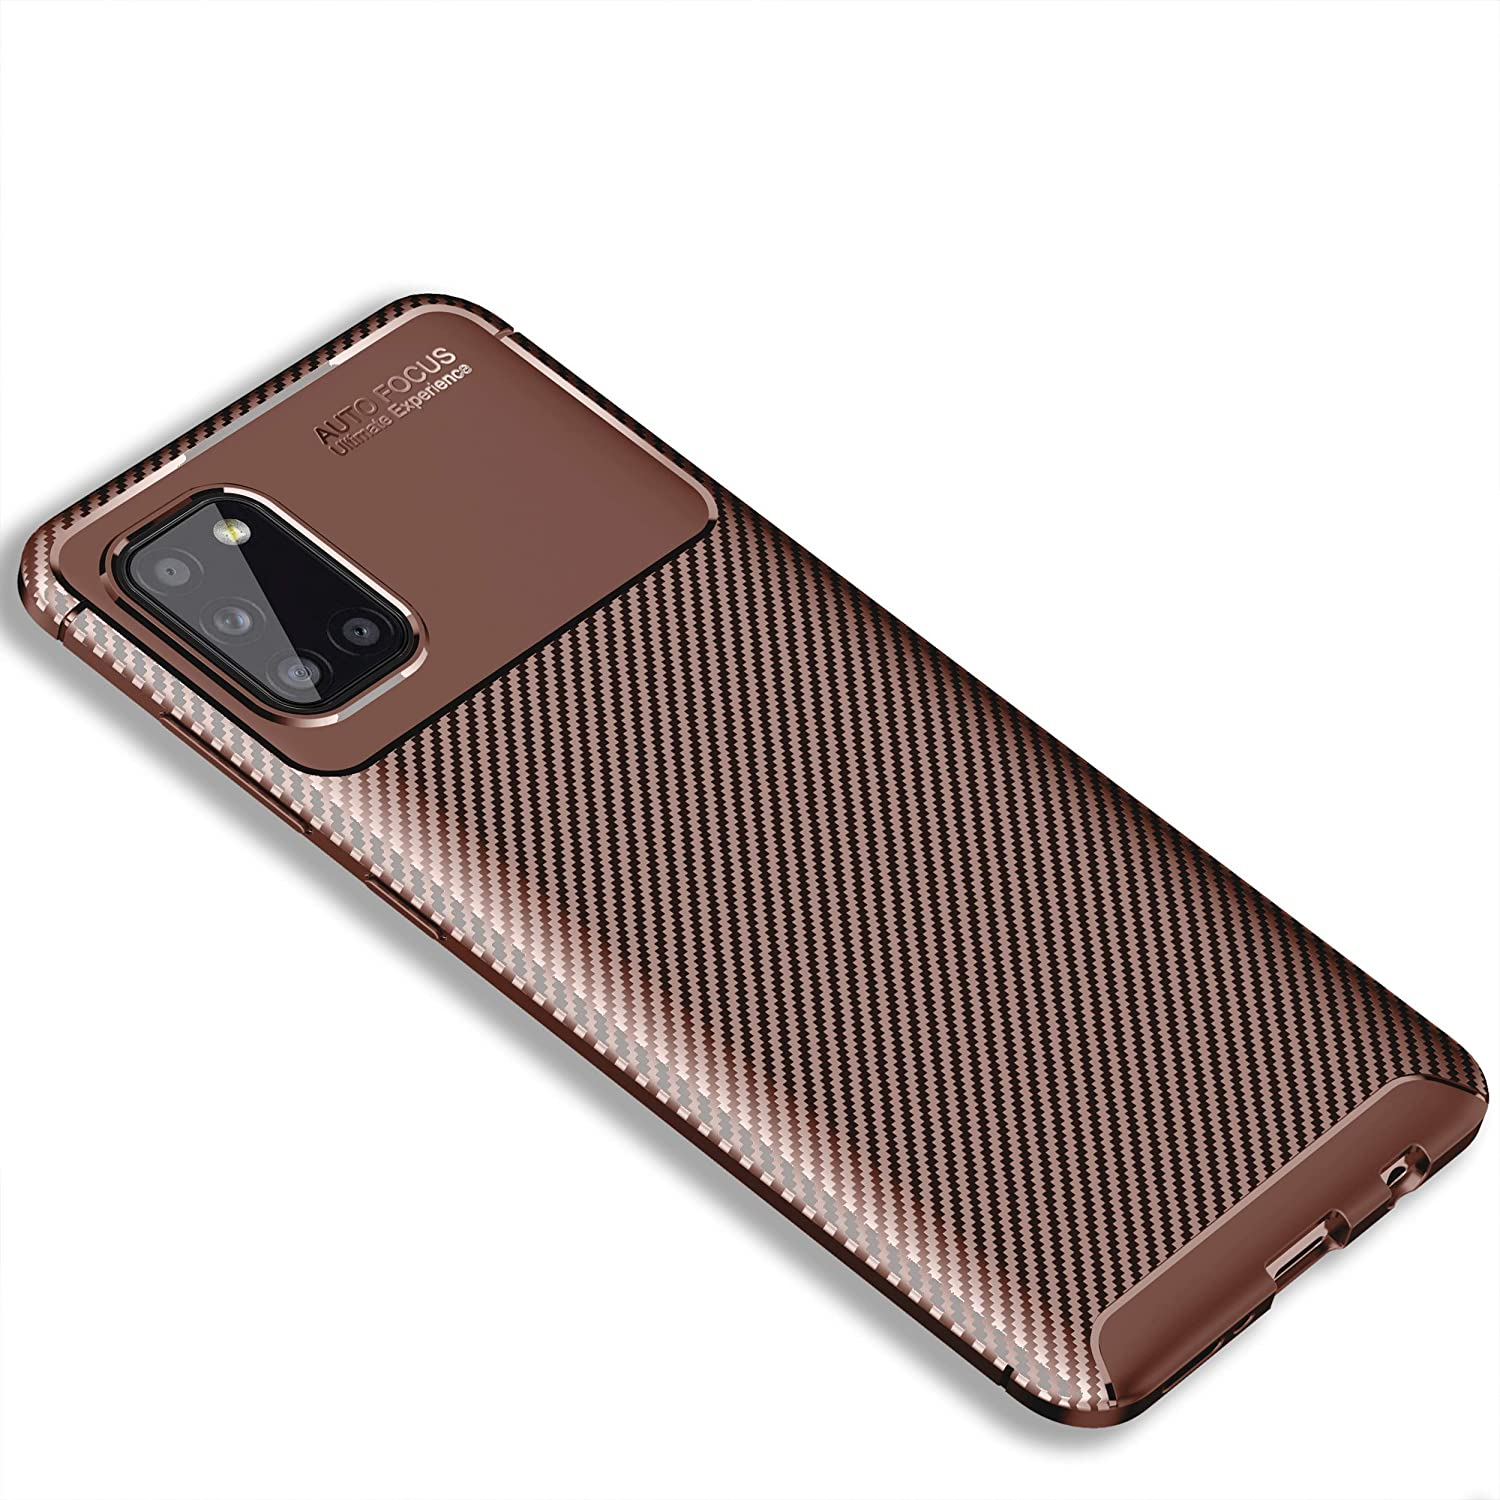 DAMONDY Samsung A31 Case,Carbon Fiber Shockproof Cover, Durable and Protective Case, Drop, Protection Case Compatible with Samsung Galaxy A31 2020 -Brown